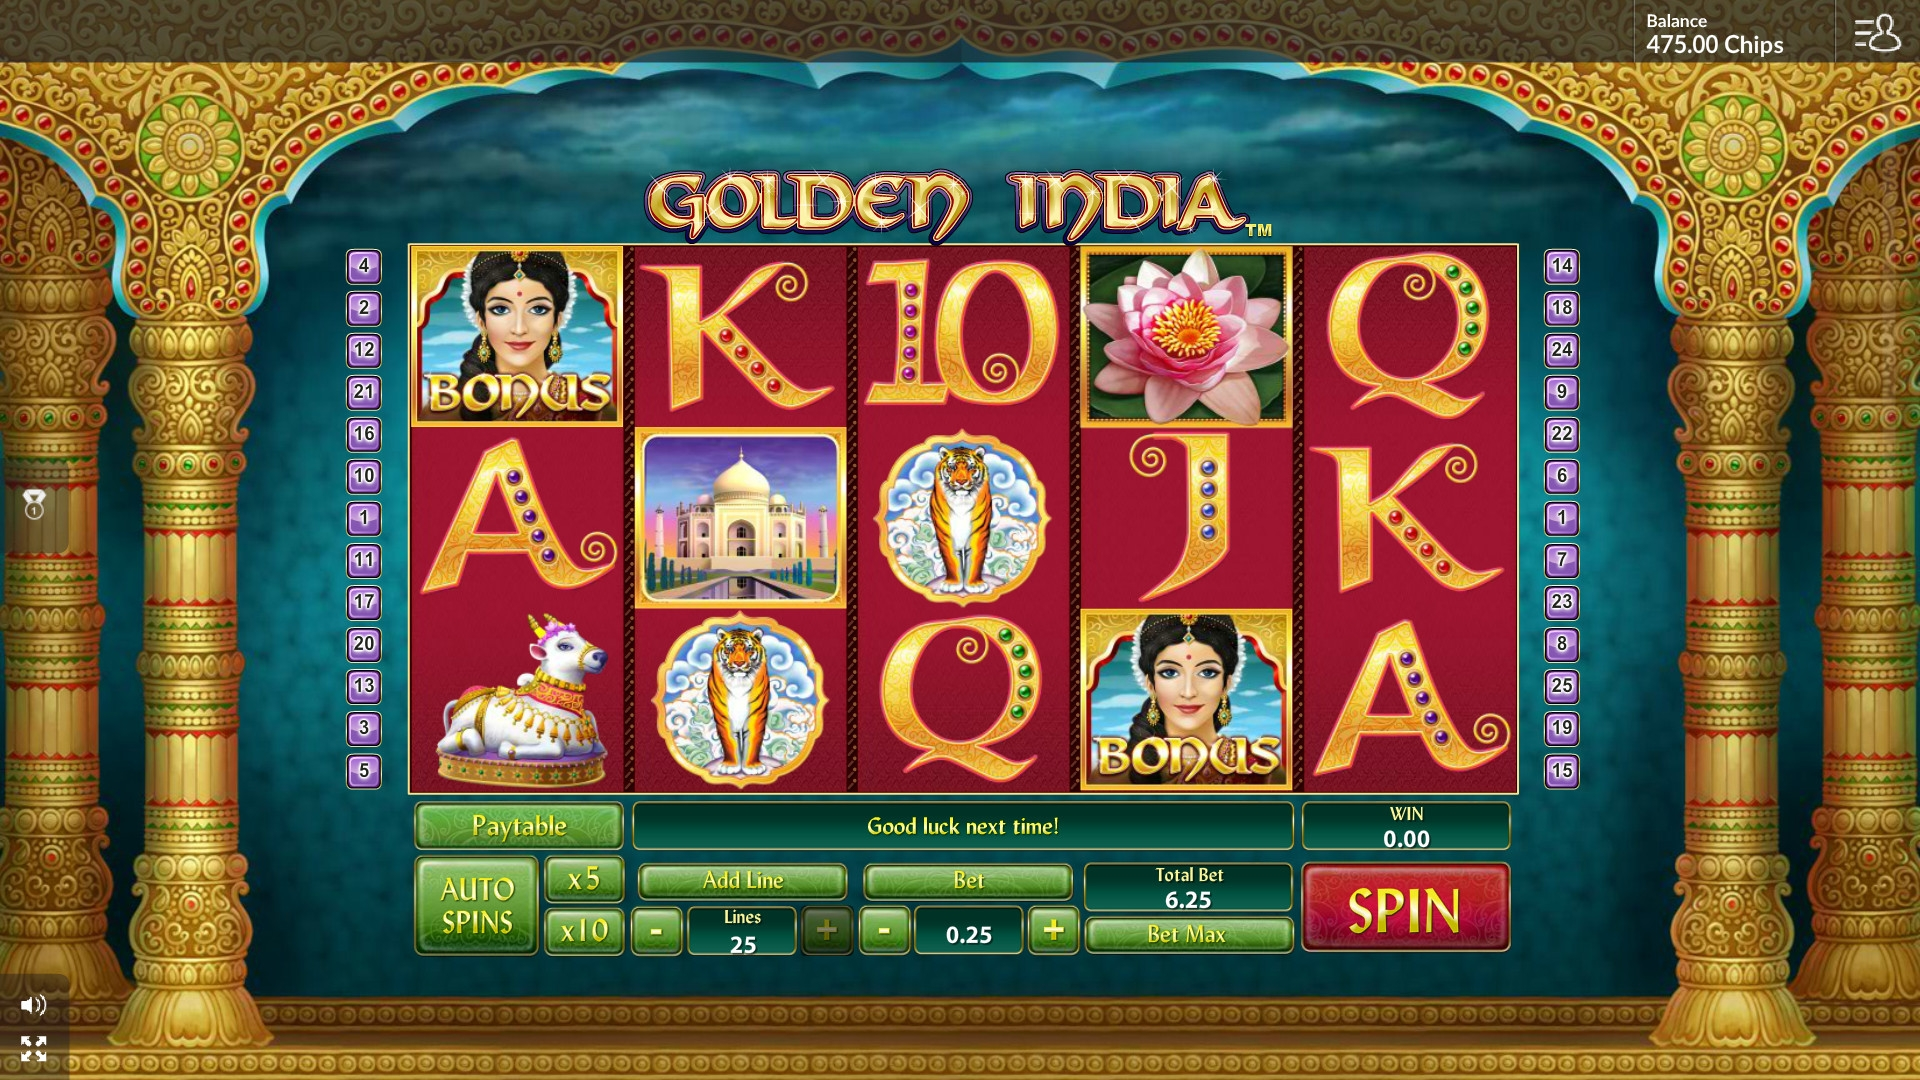 Golden India (Golden India) from category Slots